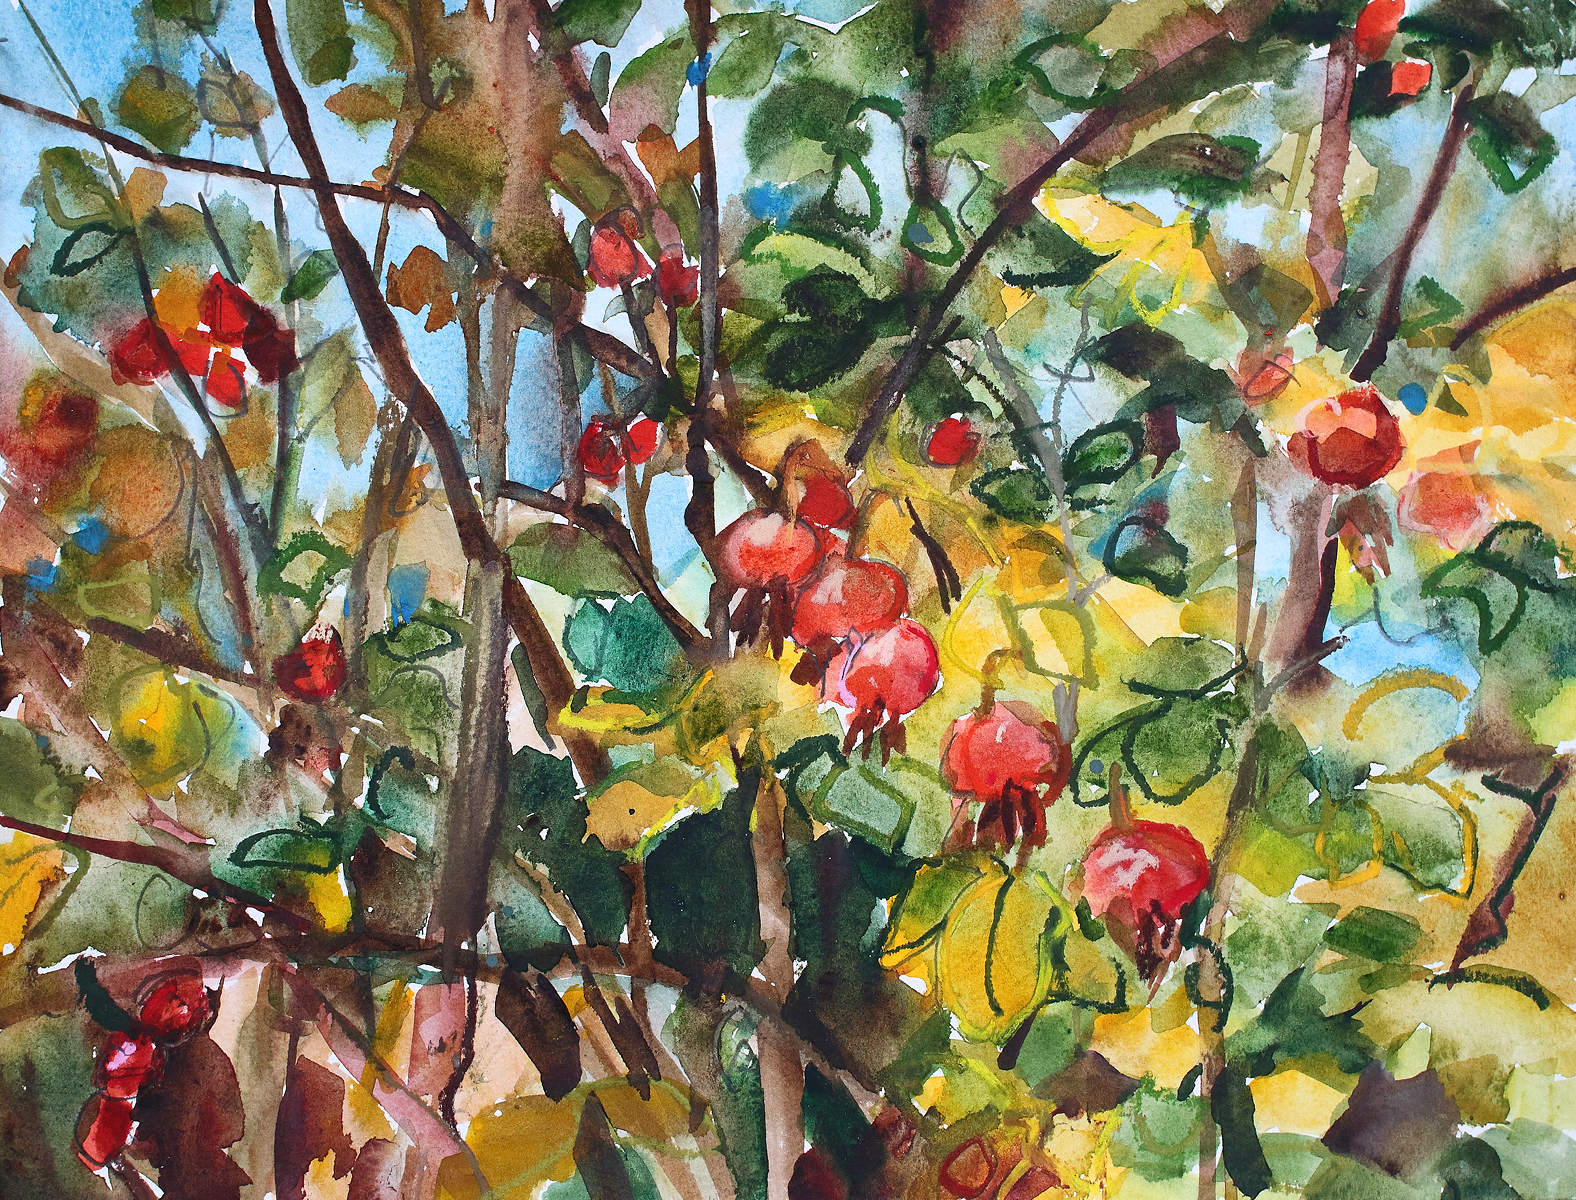 Painting of Rose Hips by Shona Barr